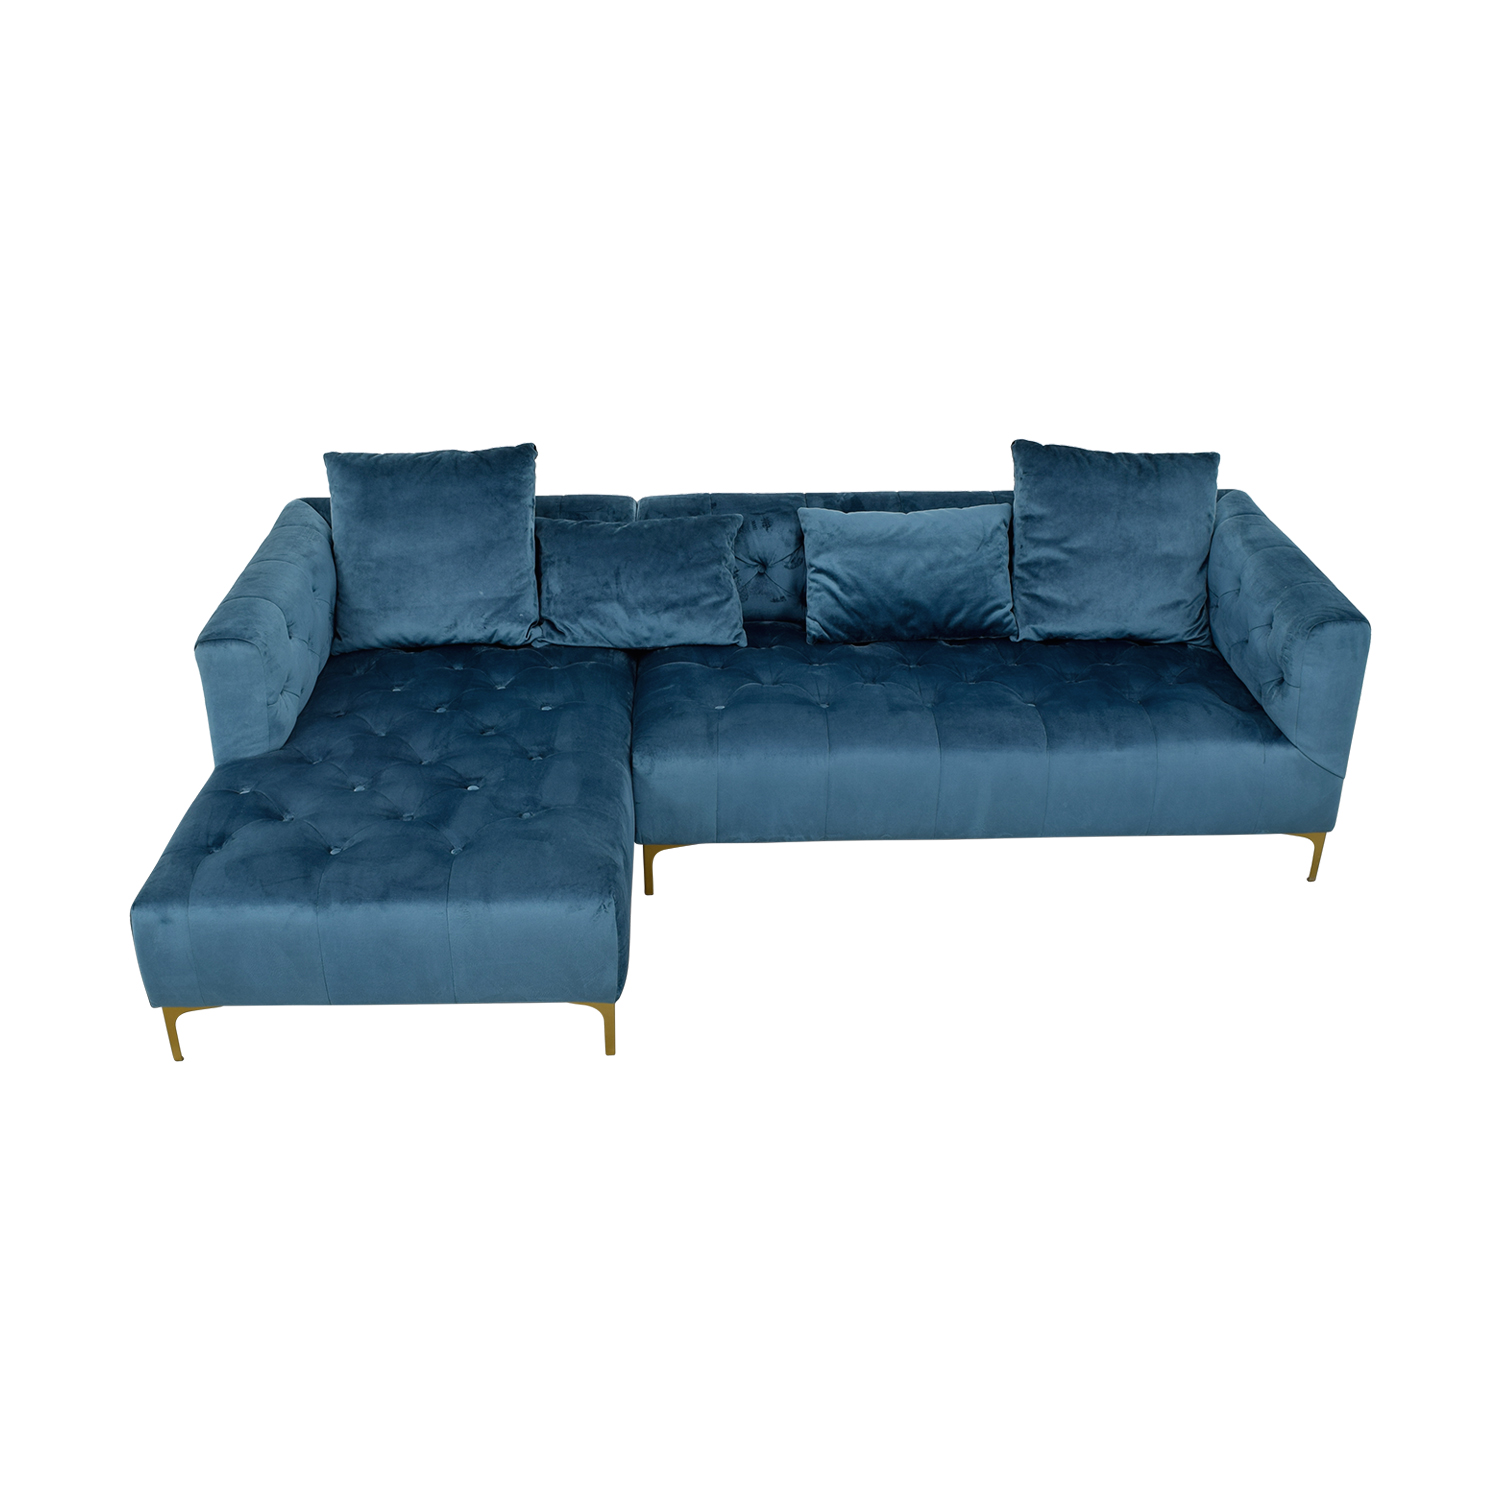 Ms. Chesterfield Teal Tufted Left Chaise Sectional blue